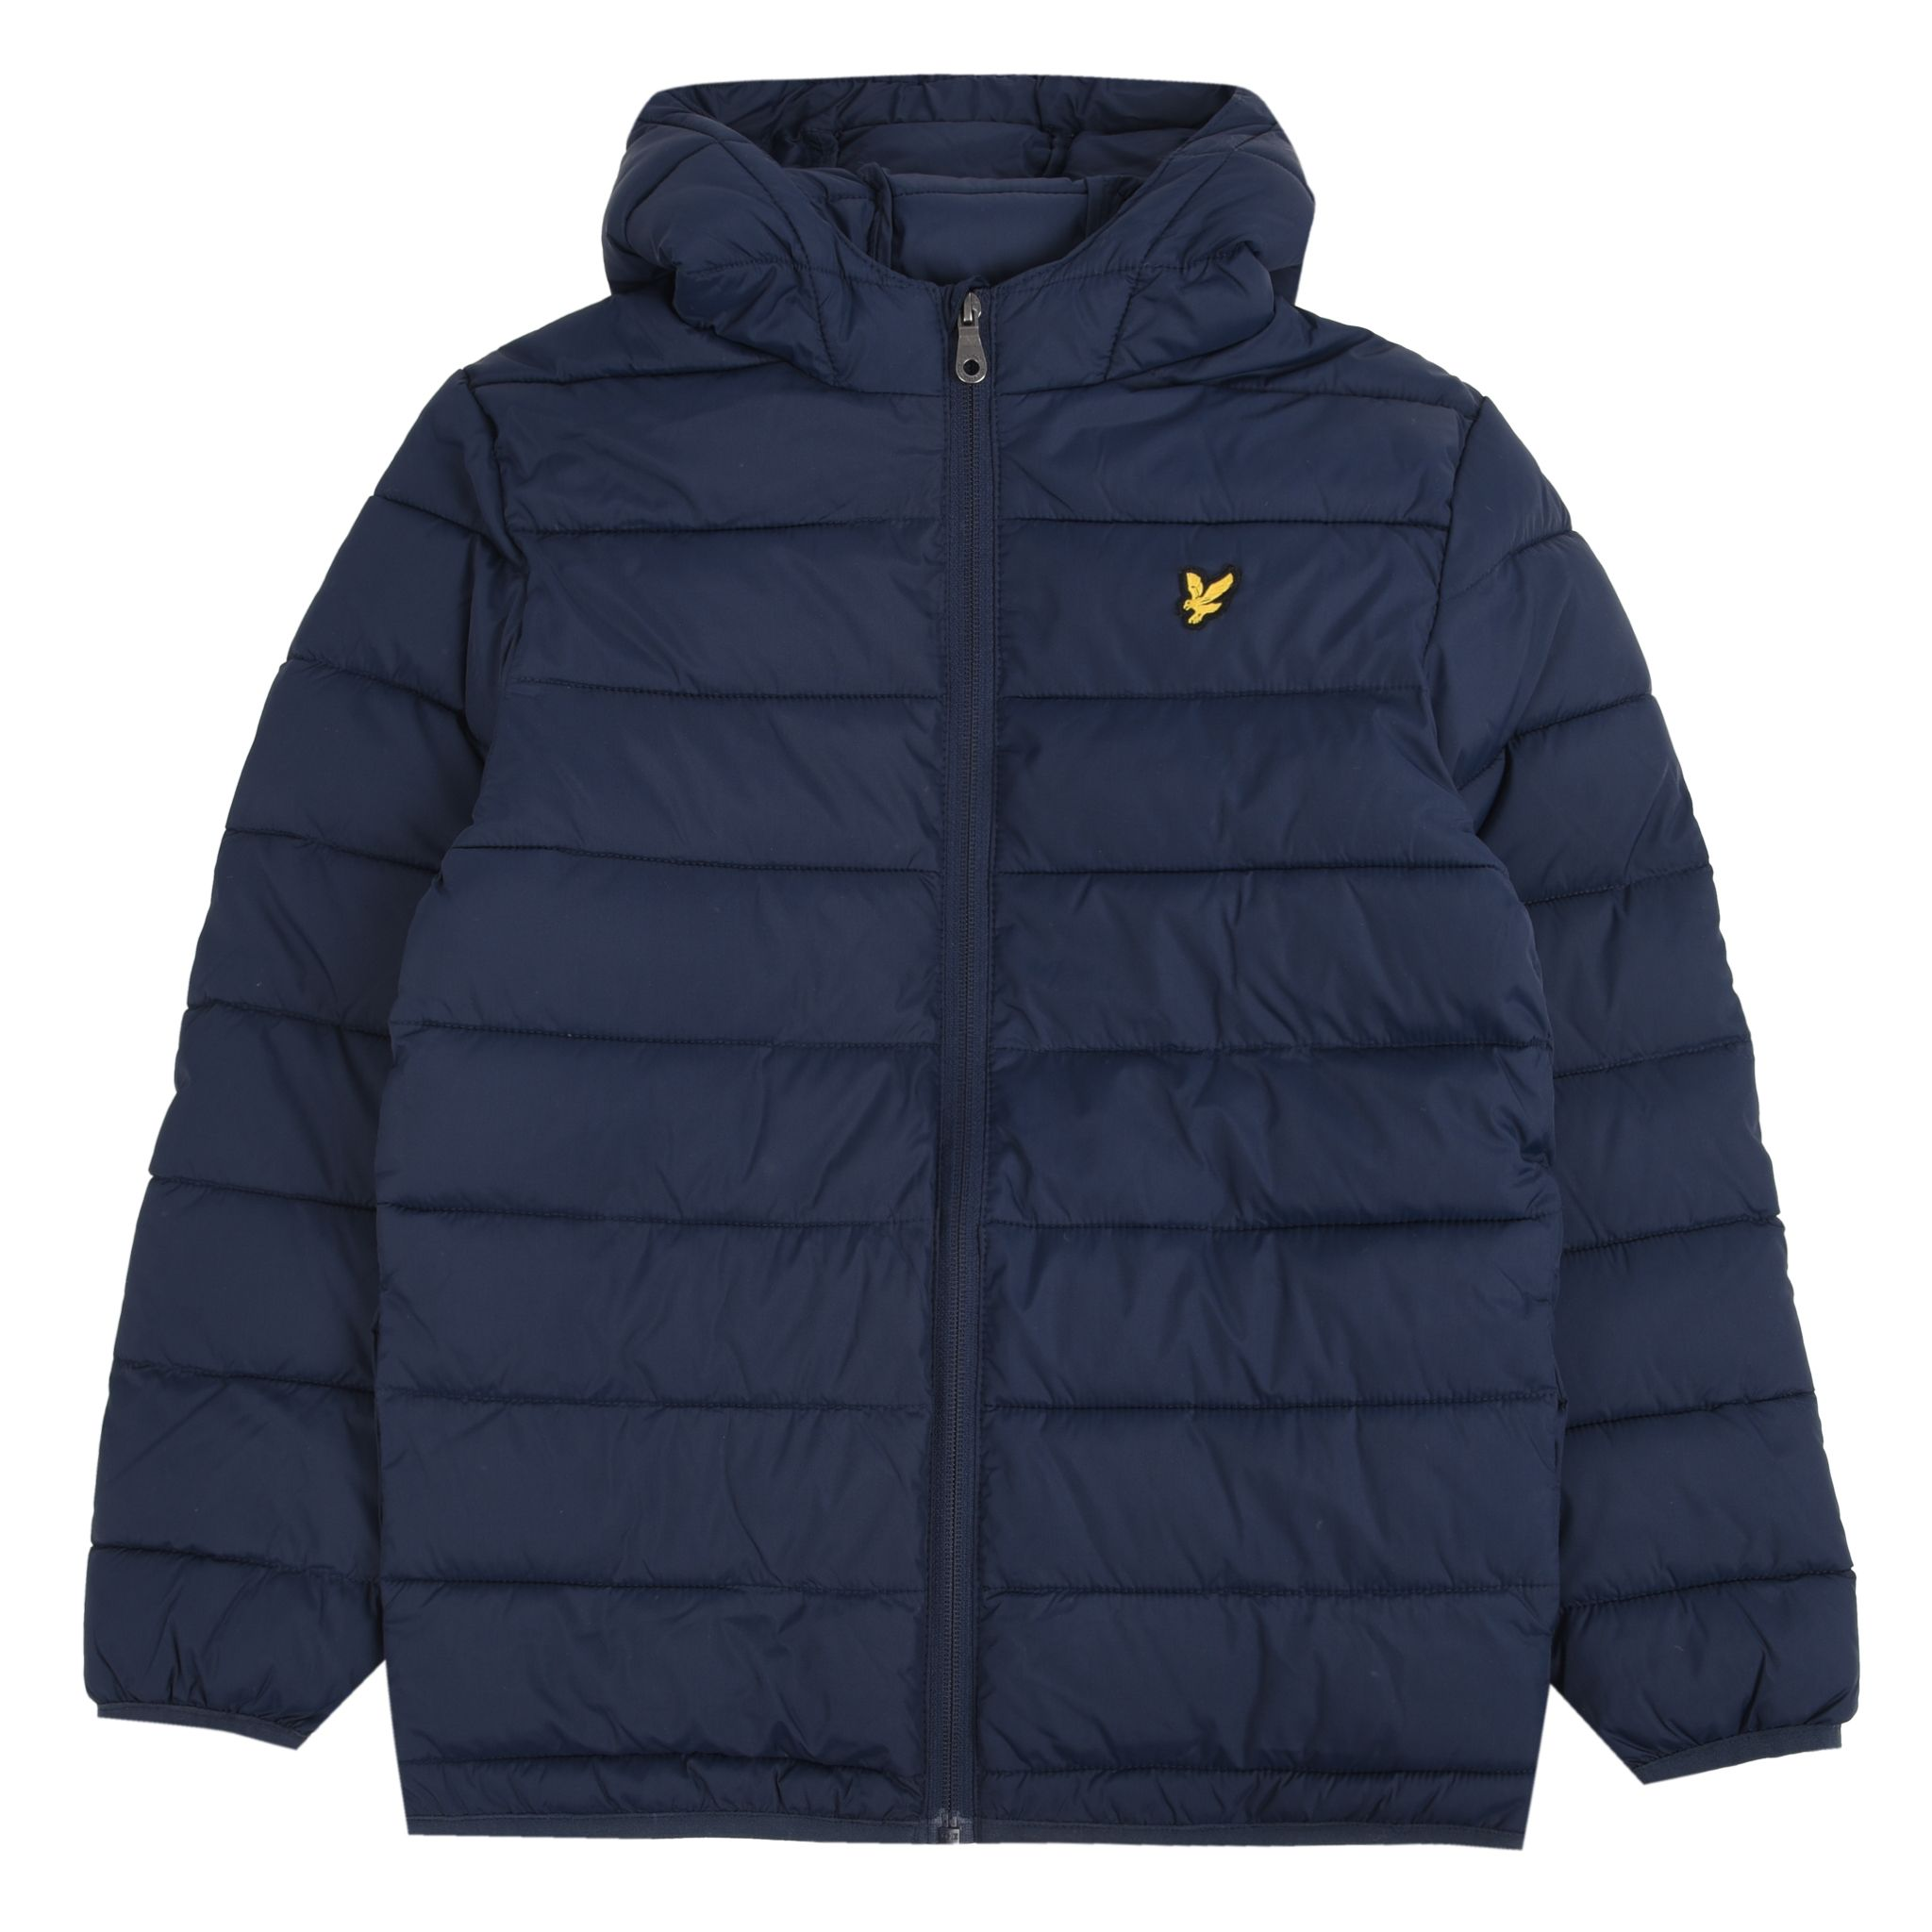 Lyle & Scott Puffa Jacket Navy